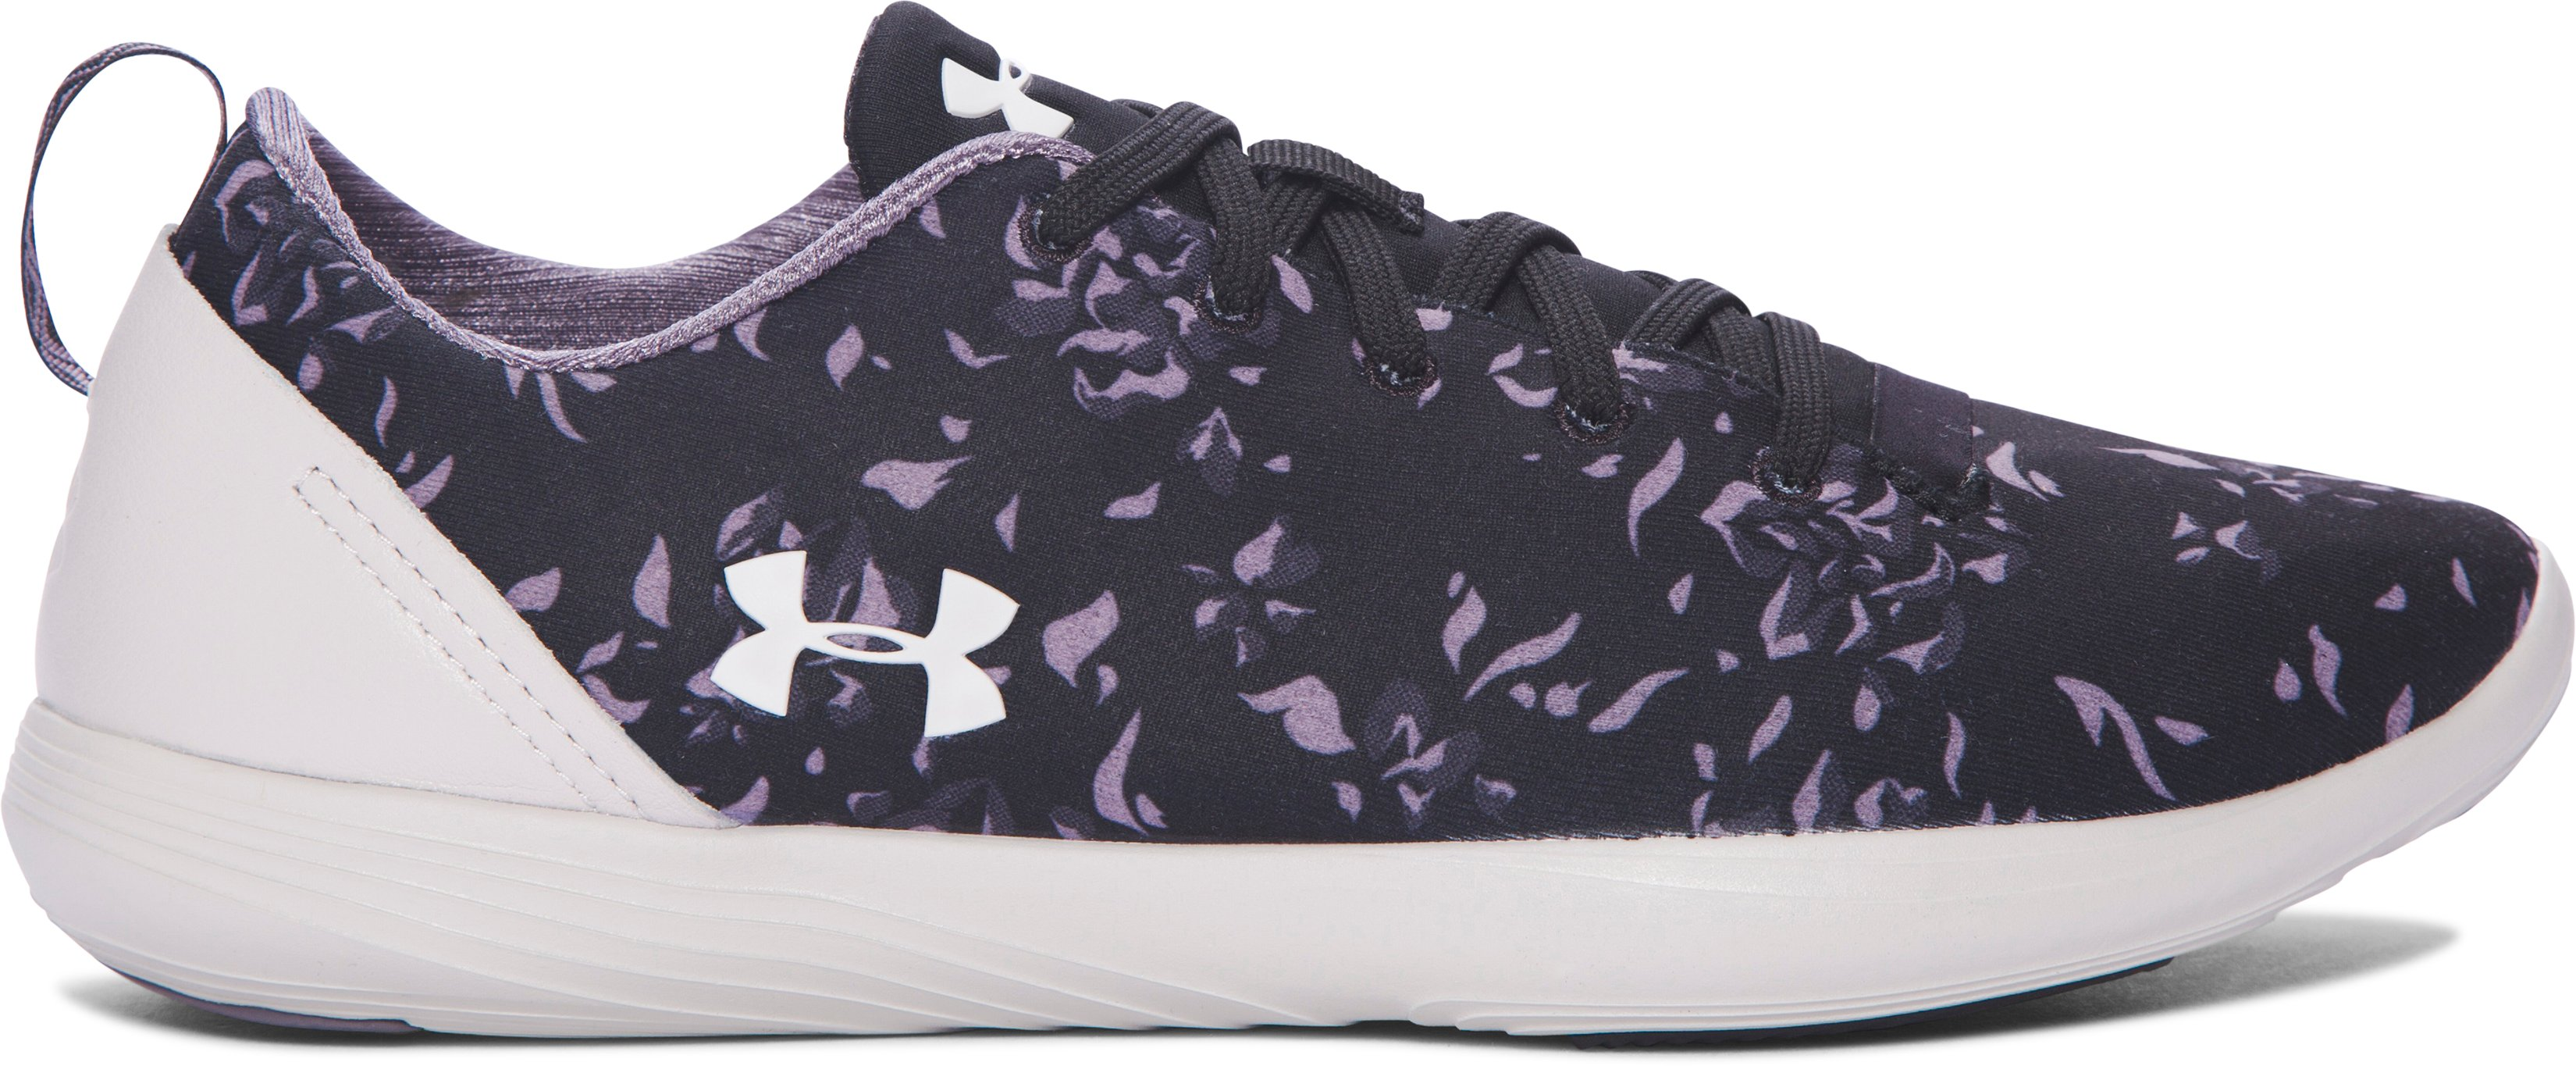 Women's UA Street Precision Sport Low Premium Lifestyle Shoes, Black , zoomed image